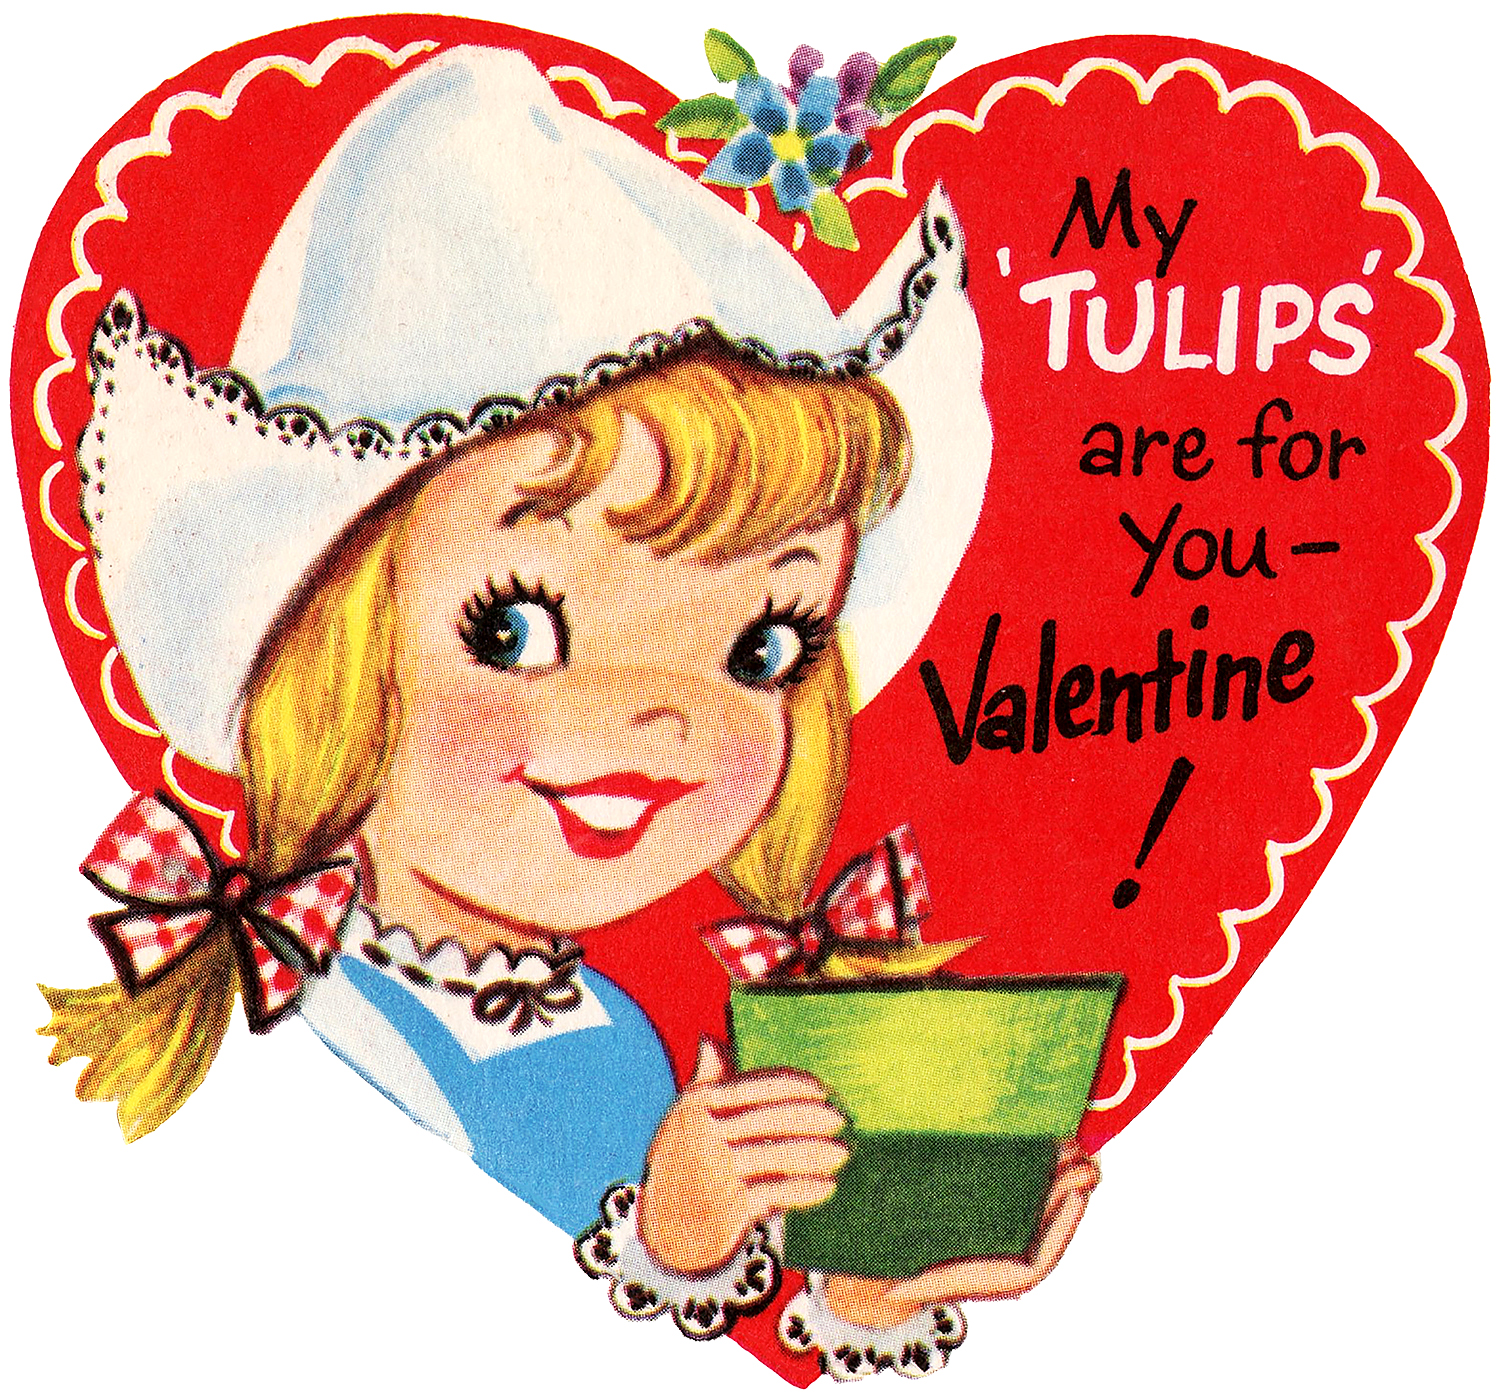 Retro Valentine Dutch Girl Image